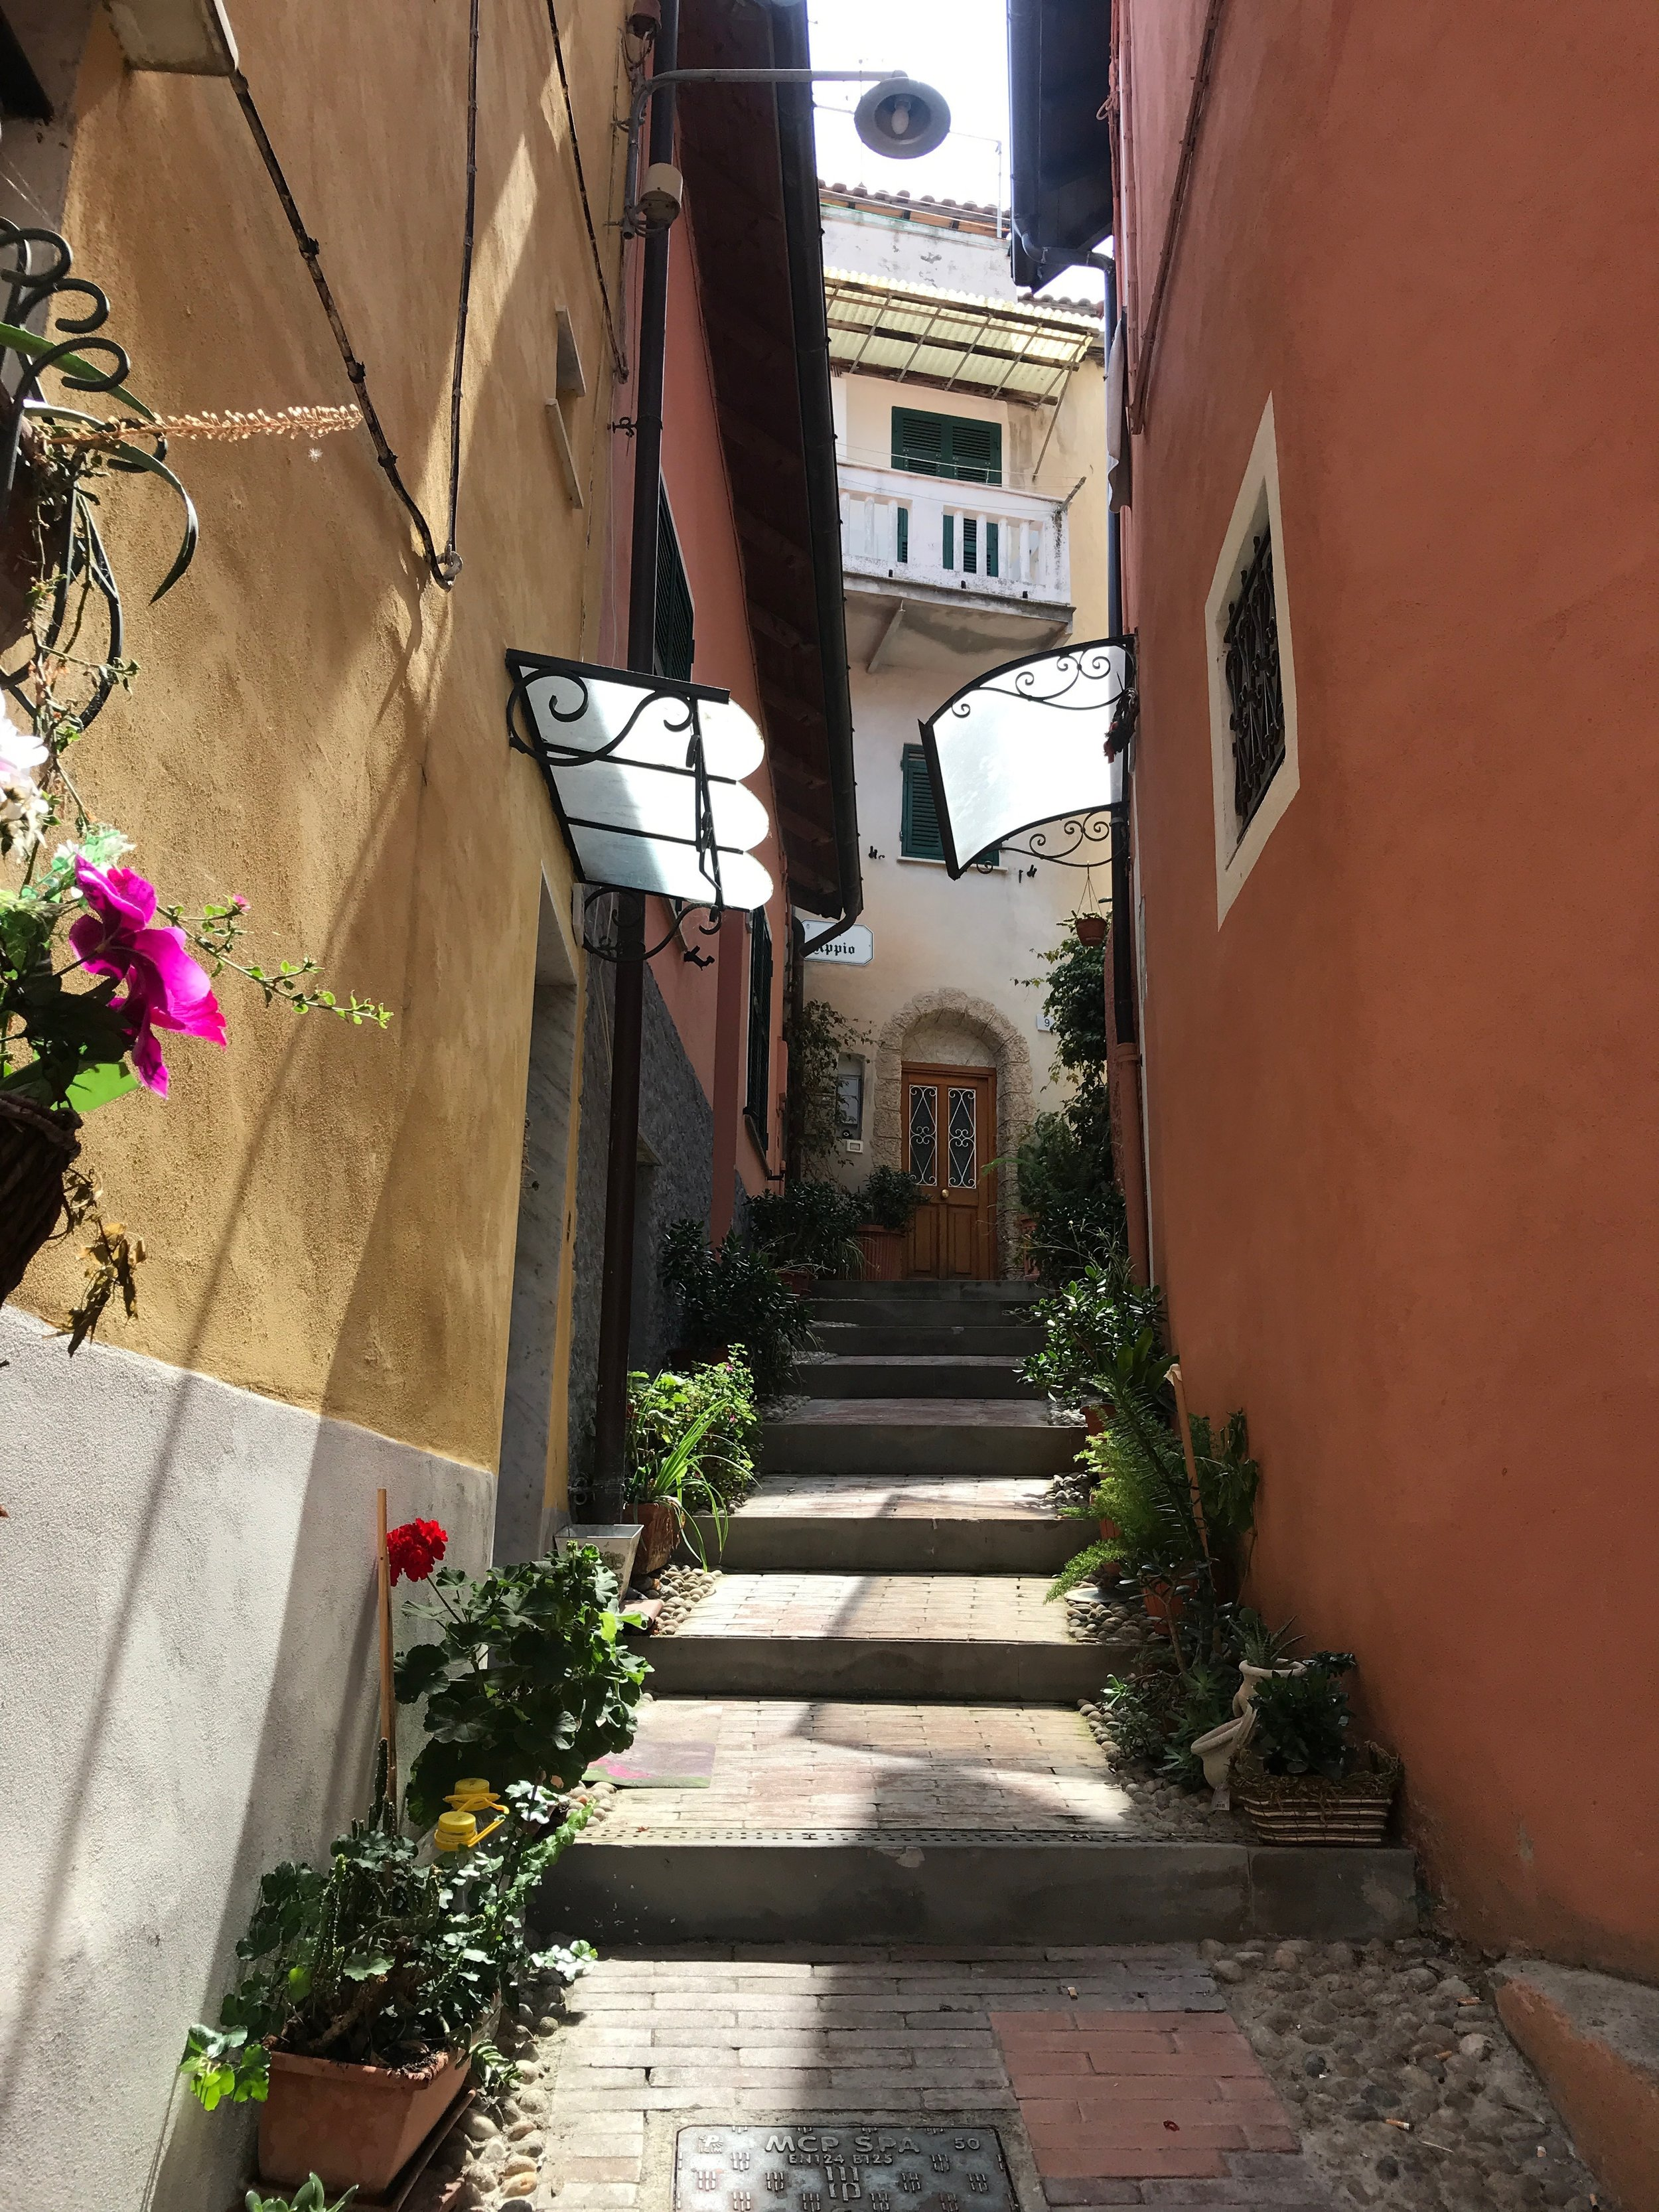 Ventimiglia backstreets. When you arrive in Ventimiglia walk straight down from the train station through the town, over and bridge and onto the beach which has lots of lovely eateries. Then explore the old cobbled streets - you will deserve an ice cream afterwards !